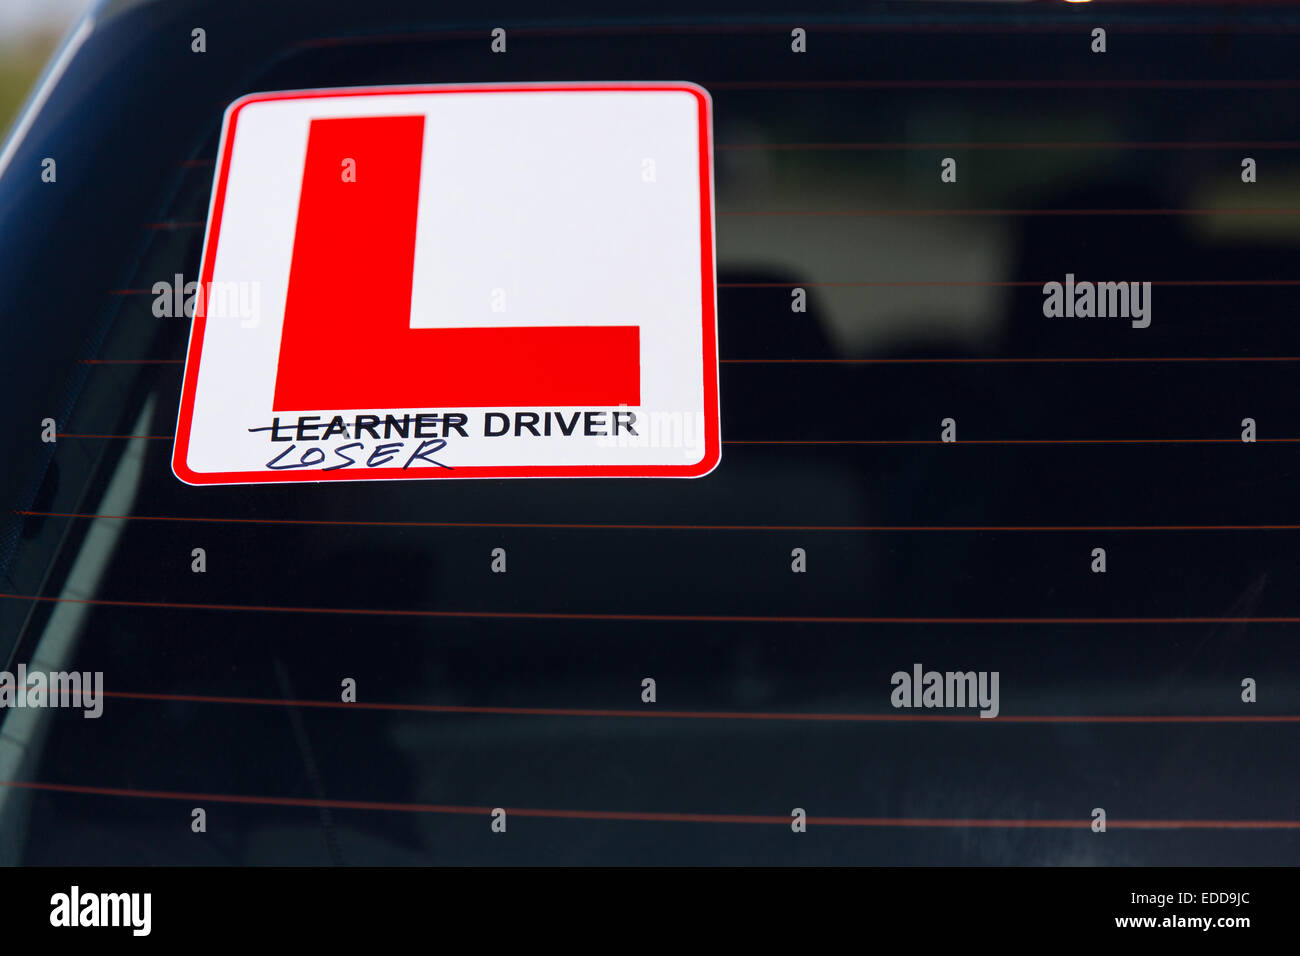 learner driver sign scratched out replaced with loser driver on the back of car windscreen - Stock Image